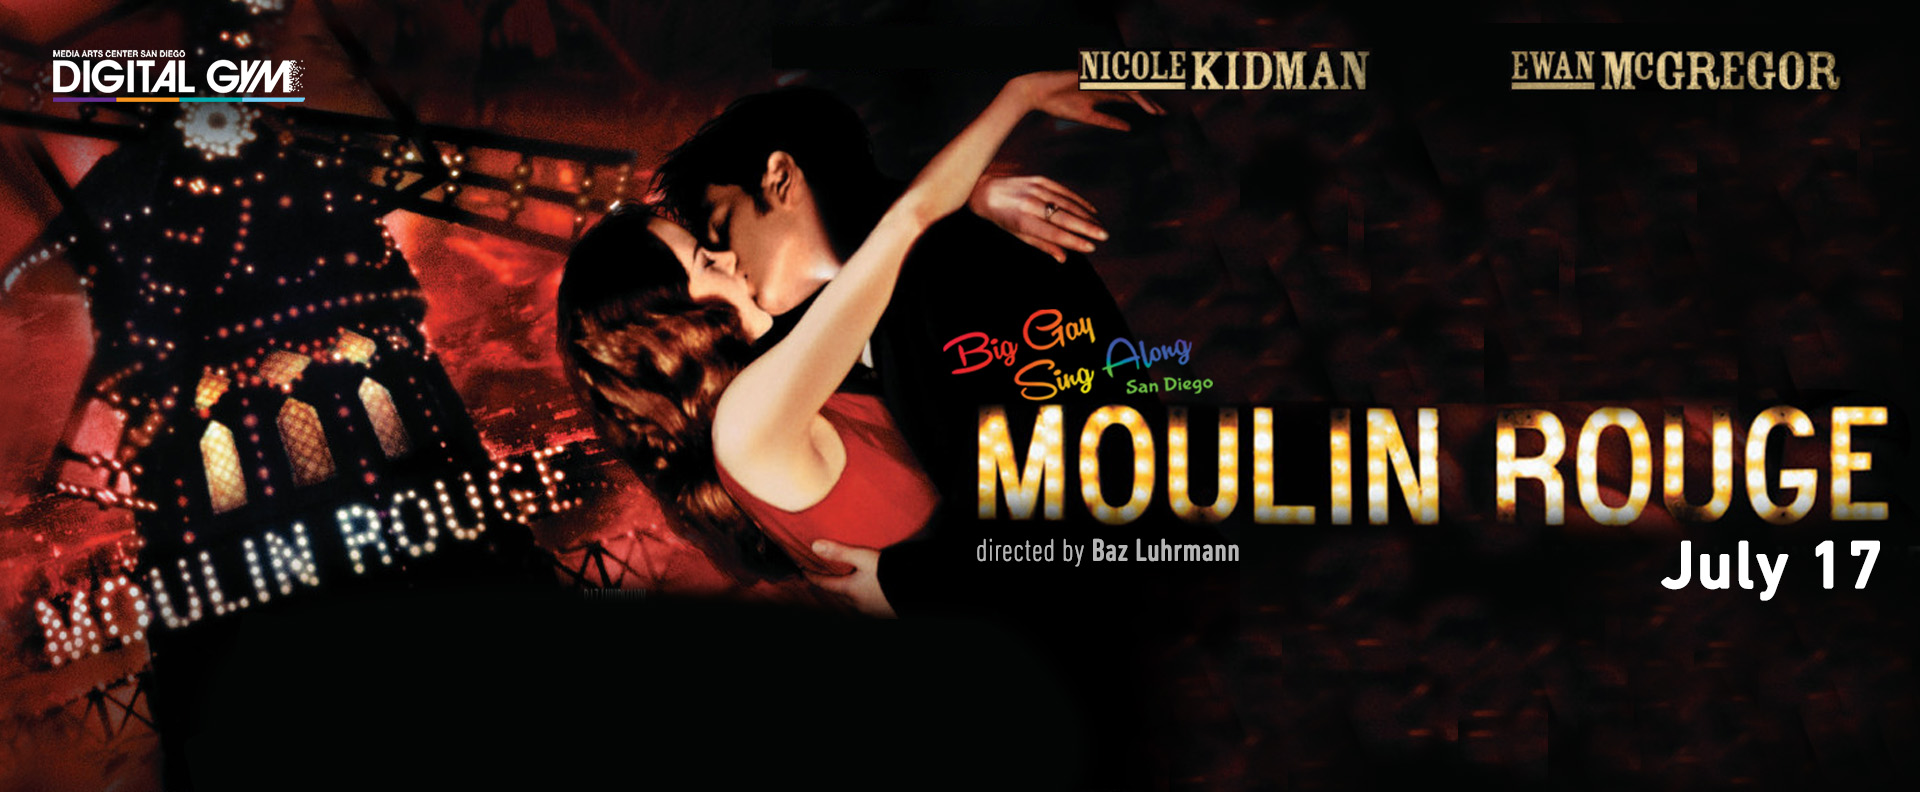 Big Gay Sing-A-Long: Moulin Rouge! (2001) (July 17)